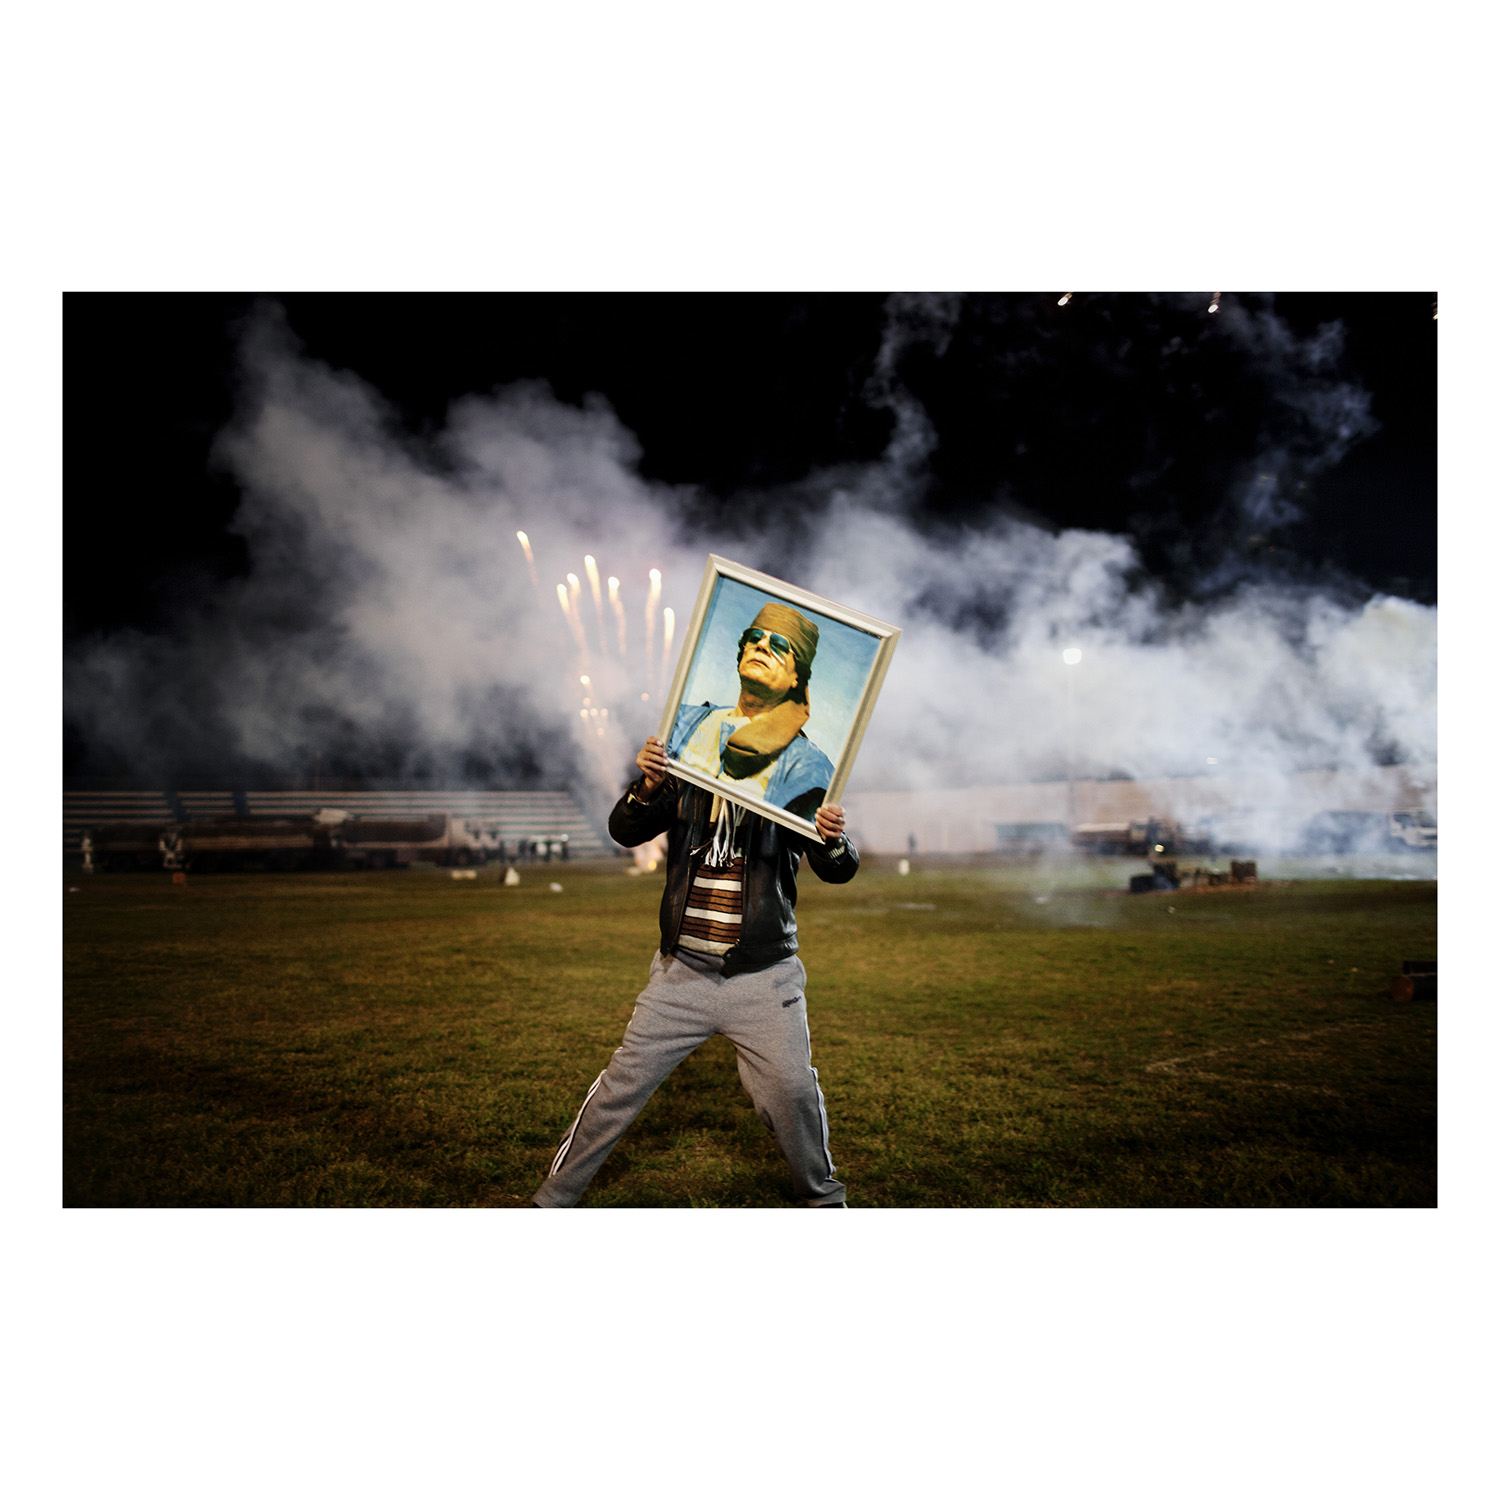 A Qaddafi supporter holds a portrait of the Libyan leader as fireworks go up in the background on a soccer field in a suburb of Zawiyah where government minders took a group of foreign journalists to attend a staged celebration. Libya. 2011.